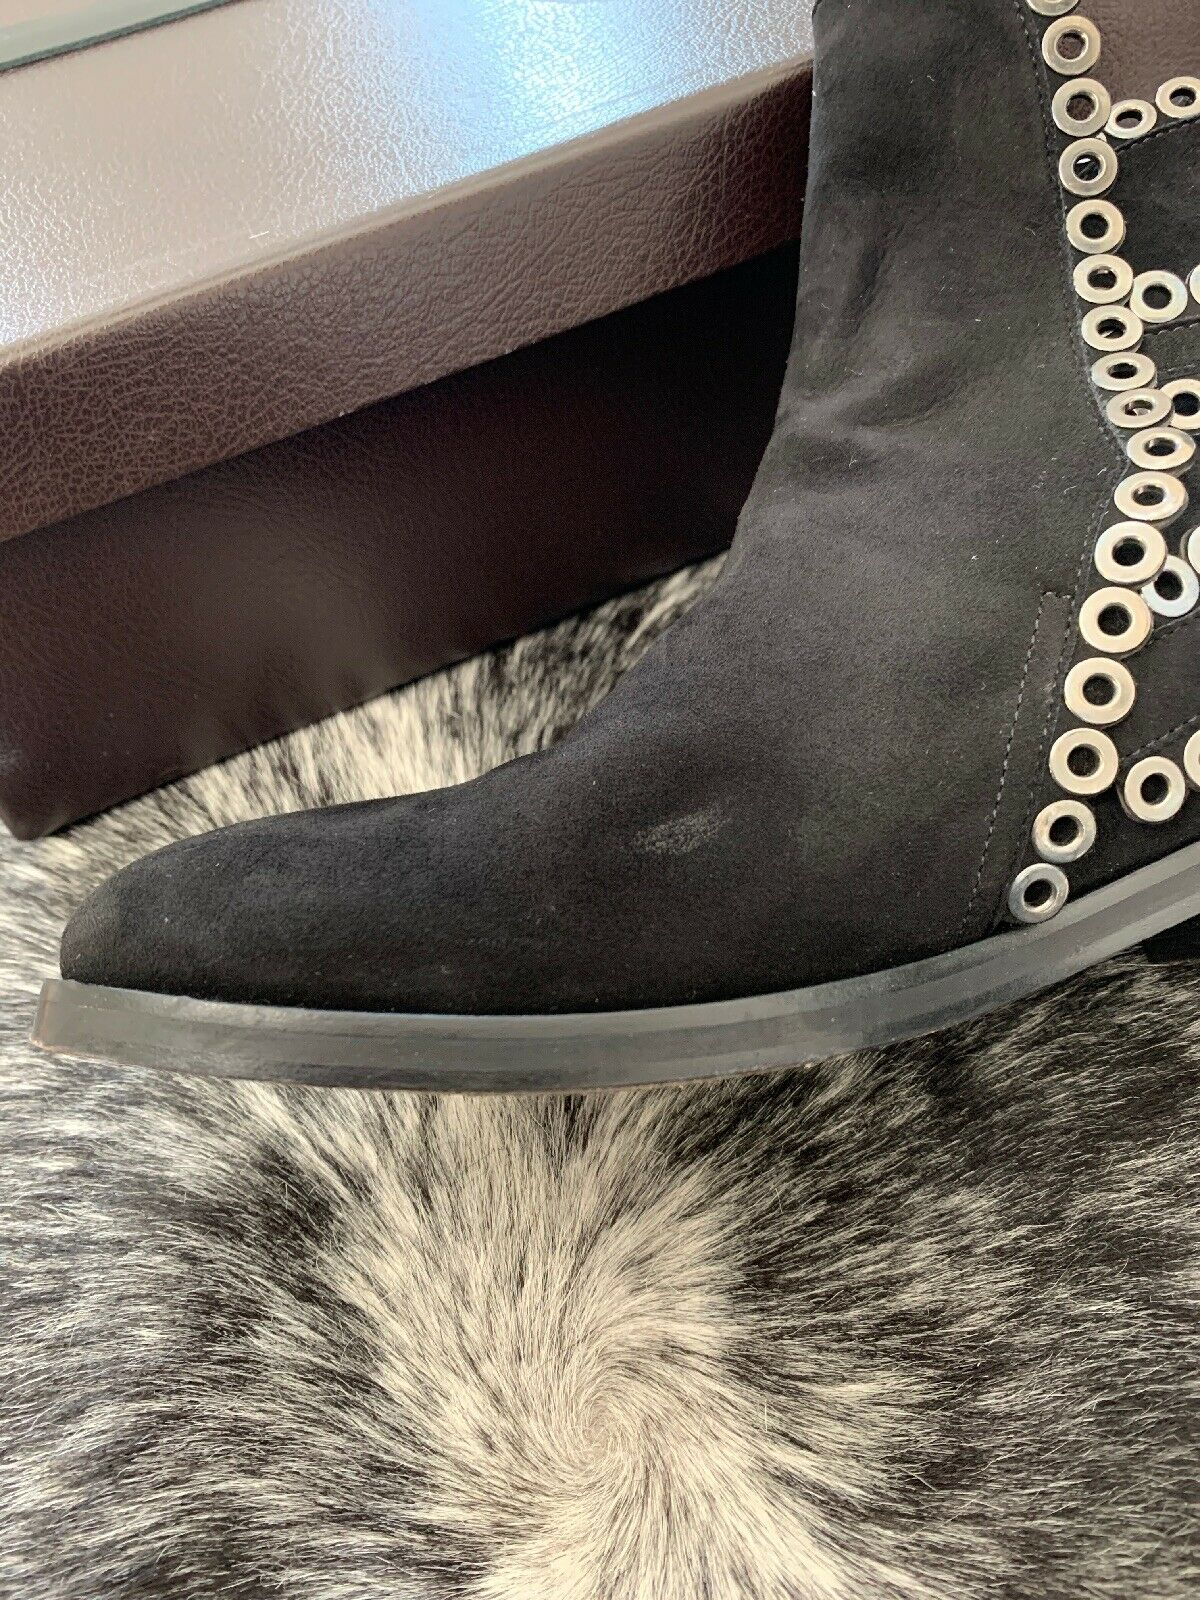 AZZEDINE ALAIA Black Suede Grommet Ankle Boots Si… - image 12